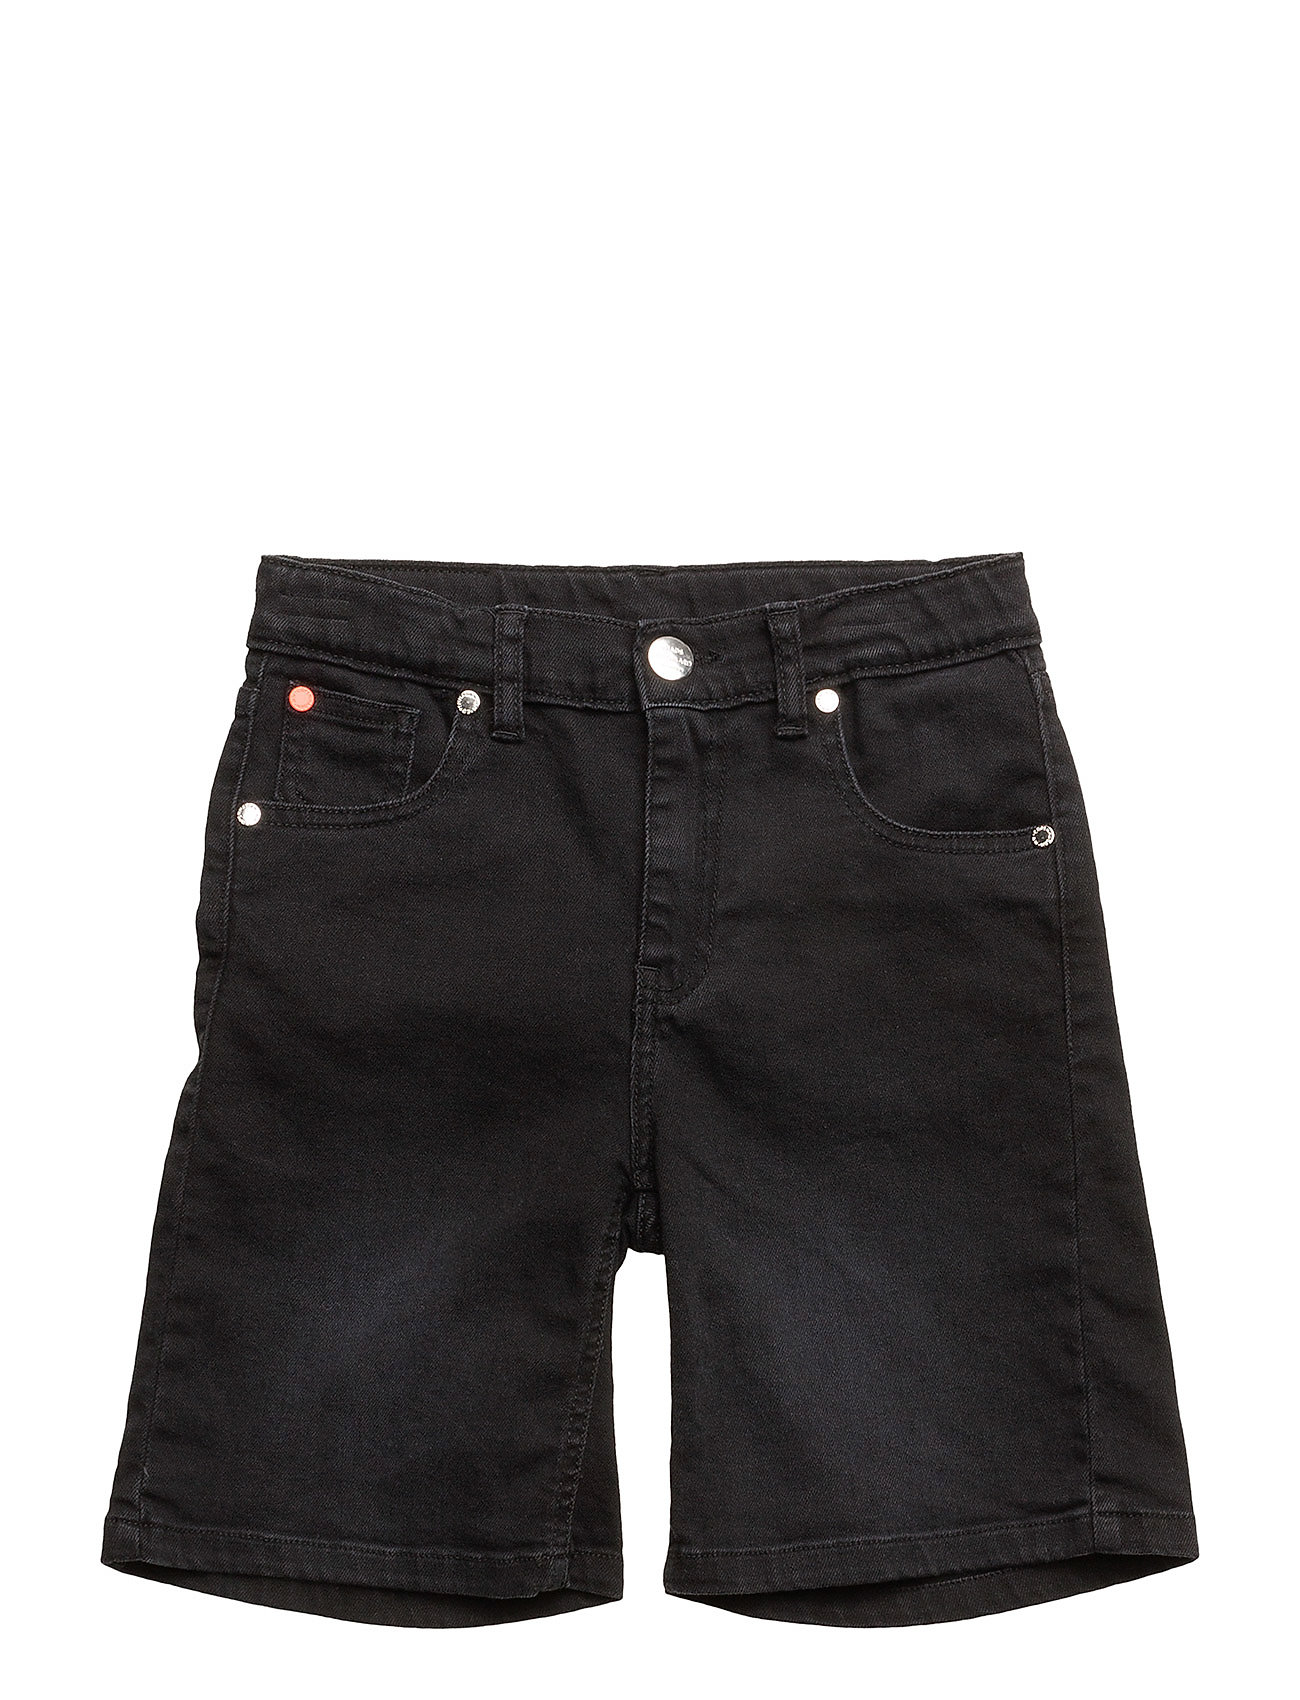 Mads Nørgaard Washed Black/Black Jagino Shor - WASHED BLACK